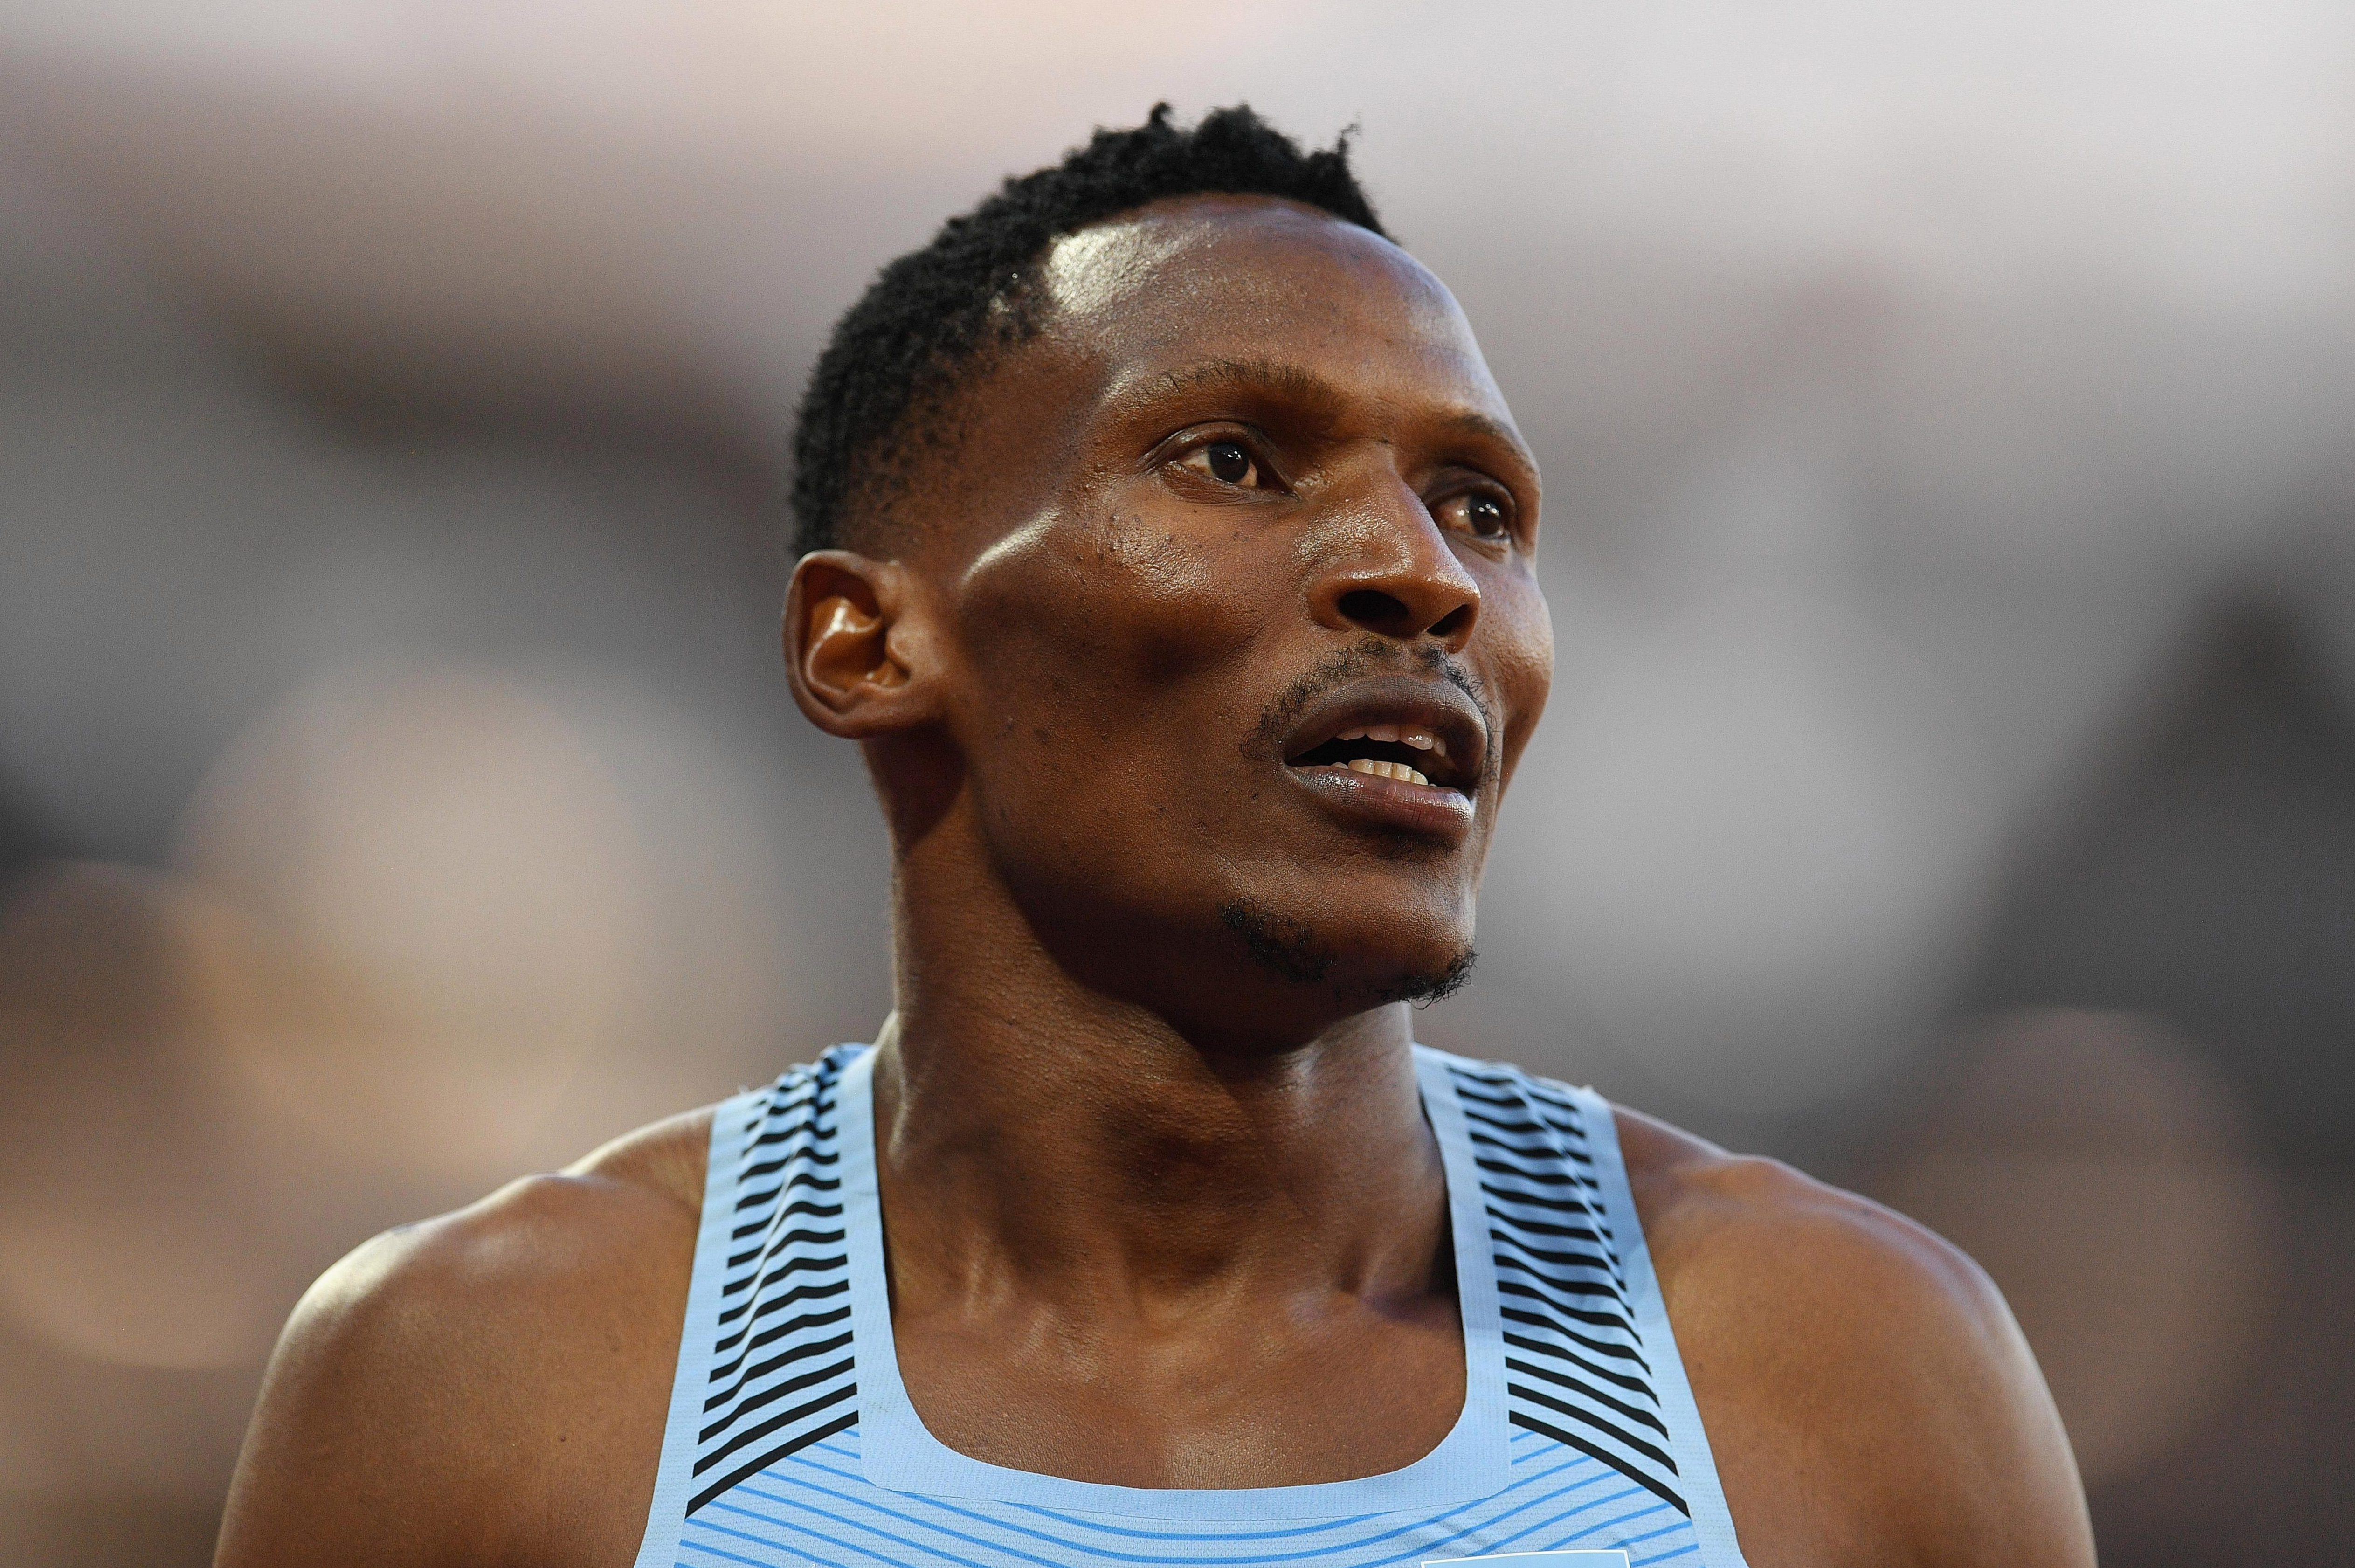 Isaac Makwala has been refused entry into London Stadium by IAAF officials